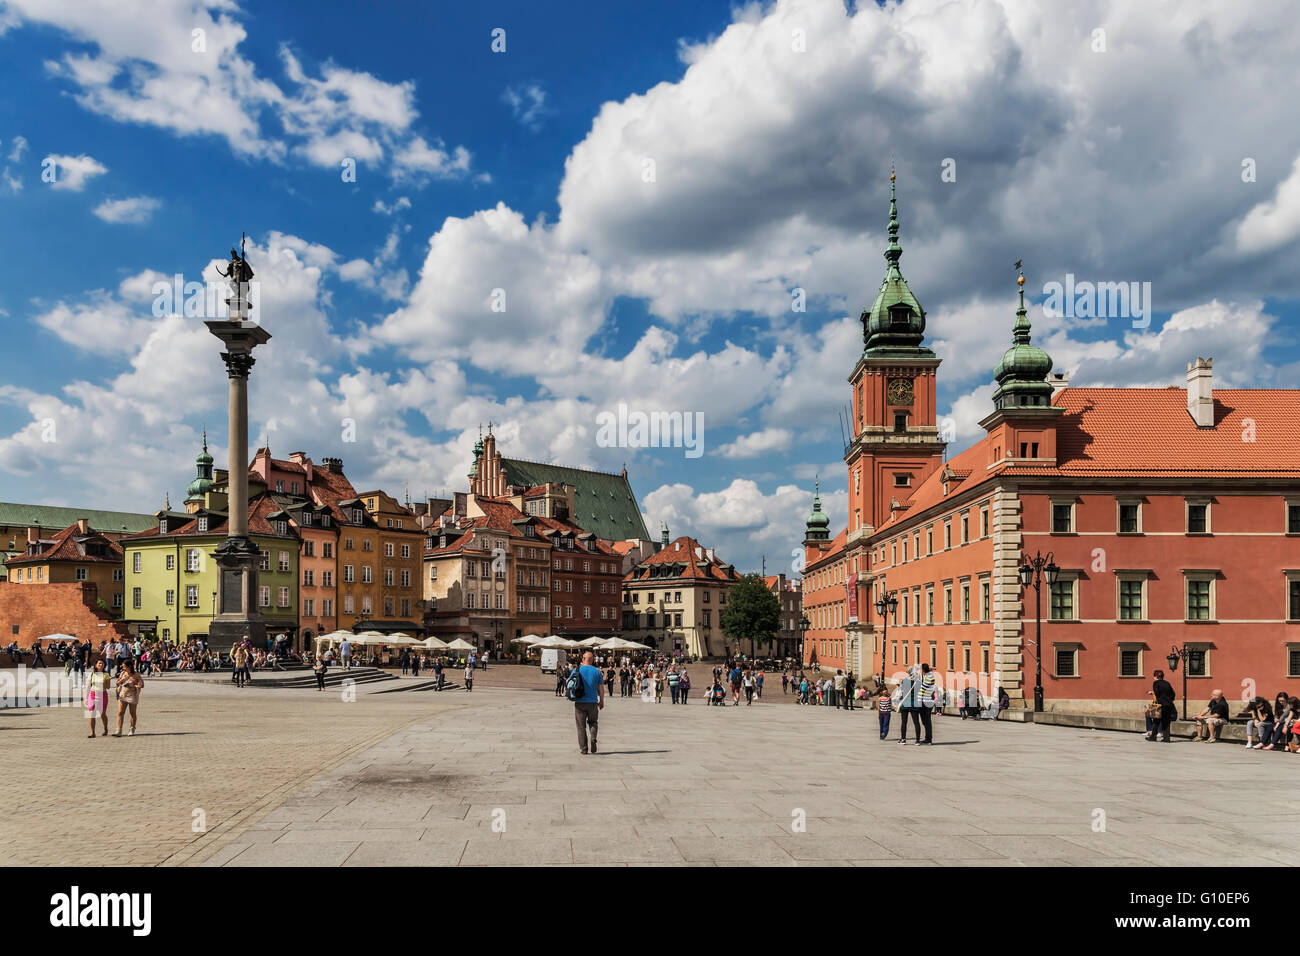 The Palace Square with Sigismunds Column and the Royal Castle, Warsaw, Masovian, Poland, Europe Stock Photo